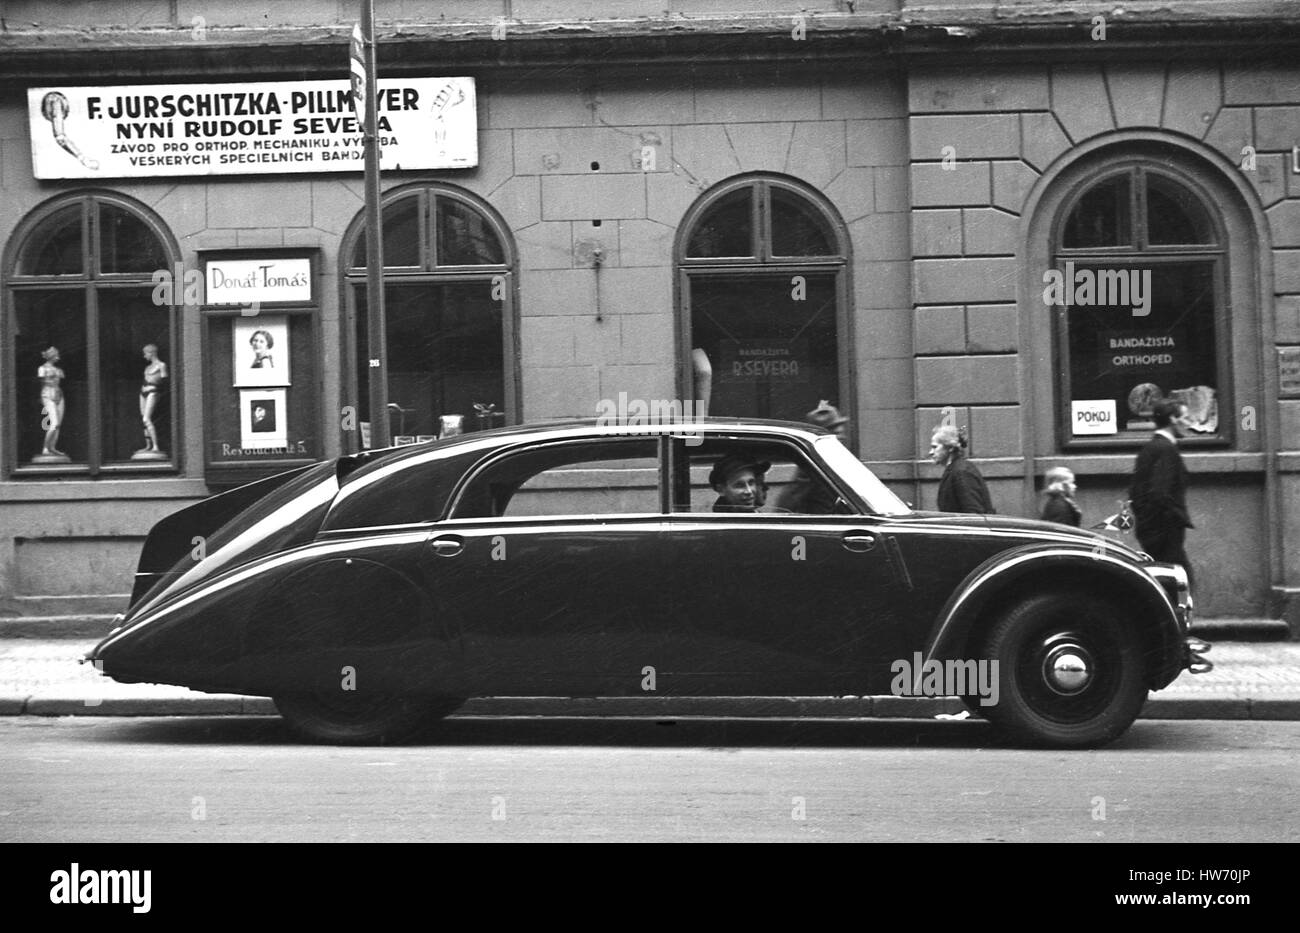 1938, historical, a chauffeured driven Tatra 87 parked outside shops in Prague, Czechoslovakia. - Stock Image